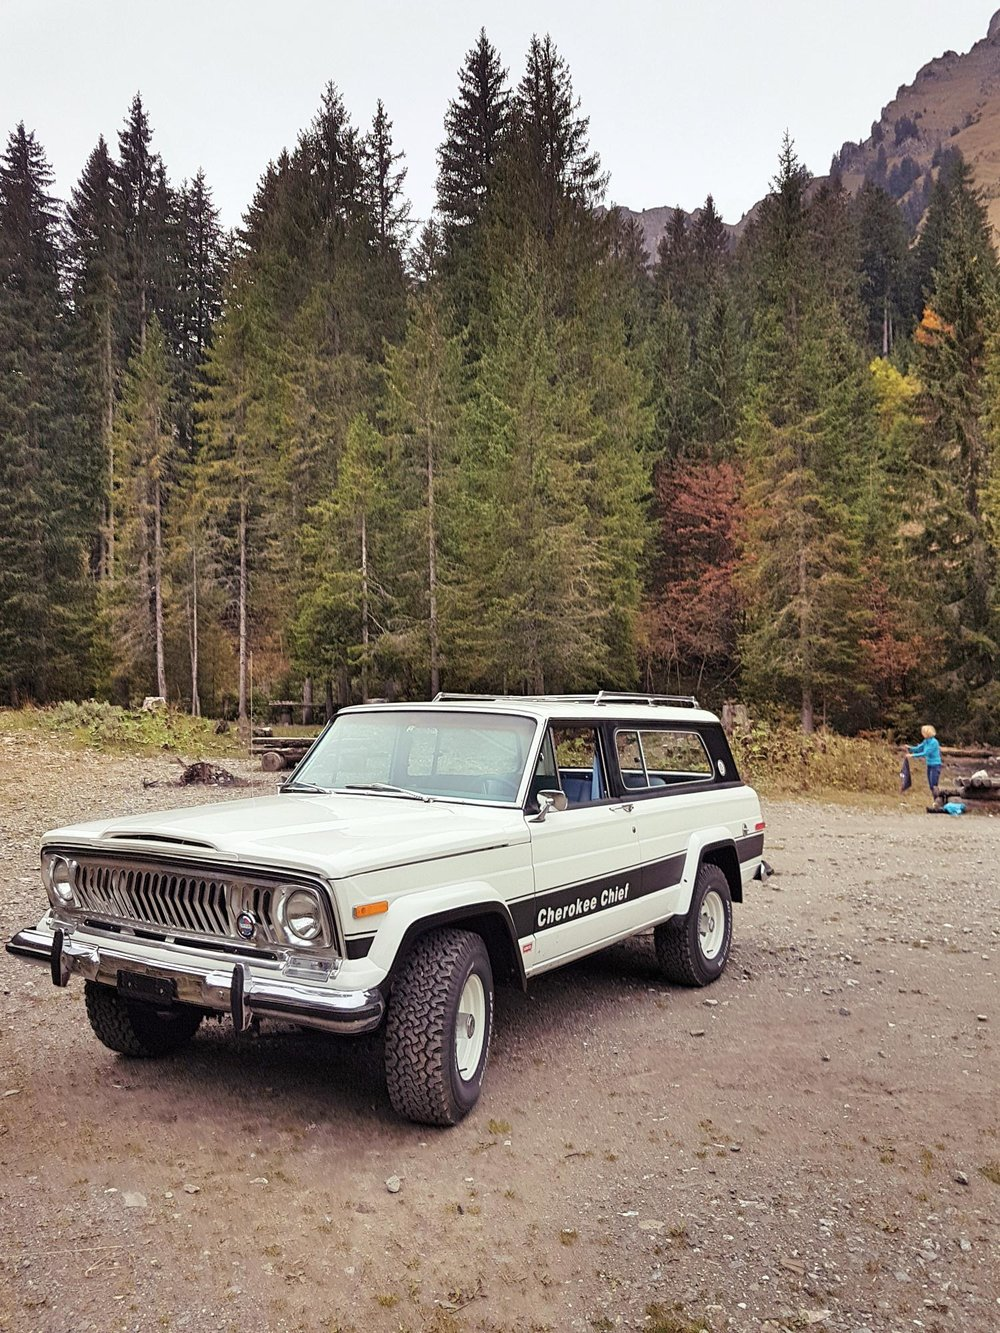 jeep-cherokee-chief-1978-shooting-morgins-switzerland-101.jpg